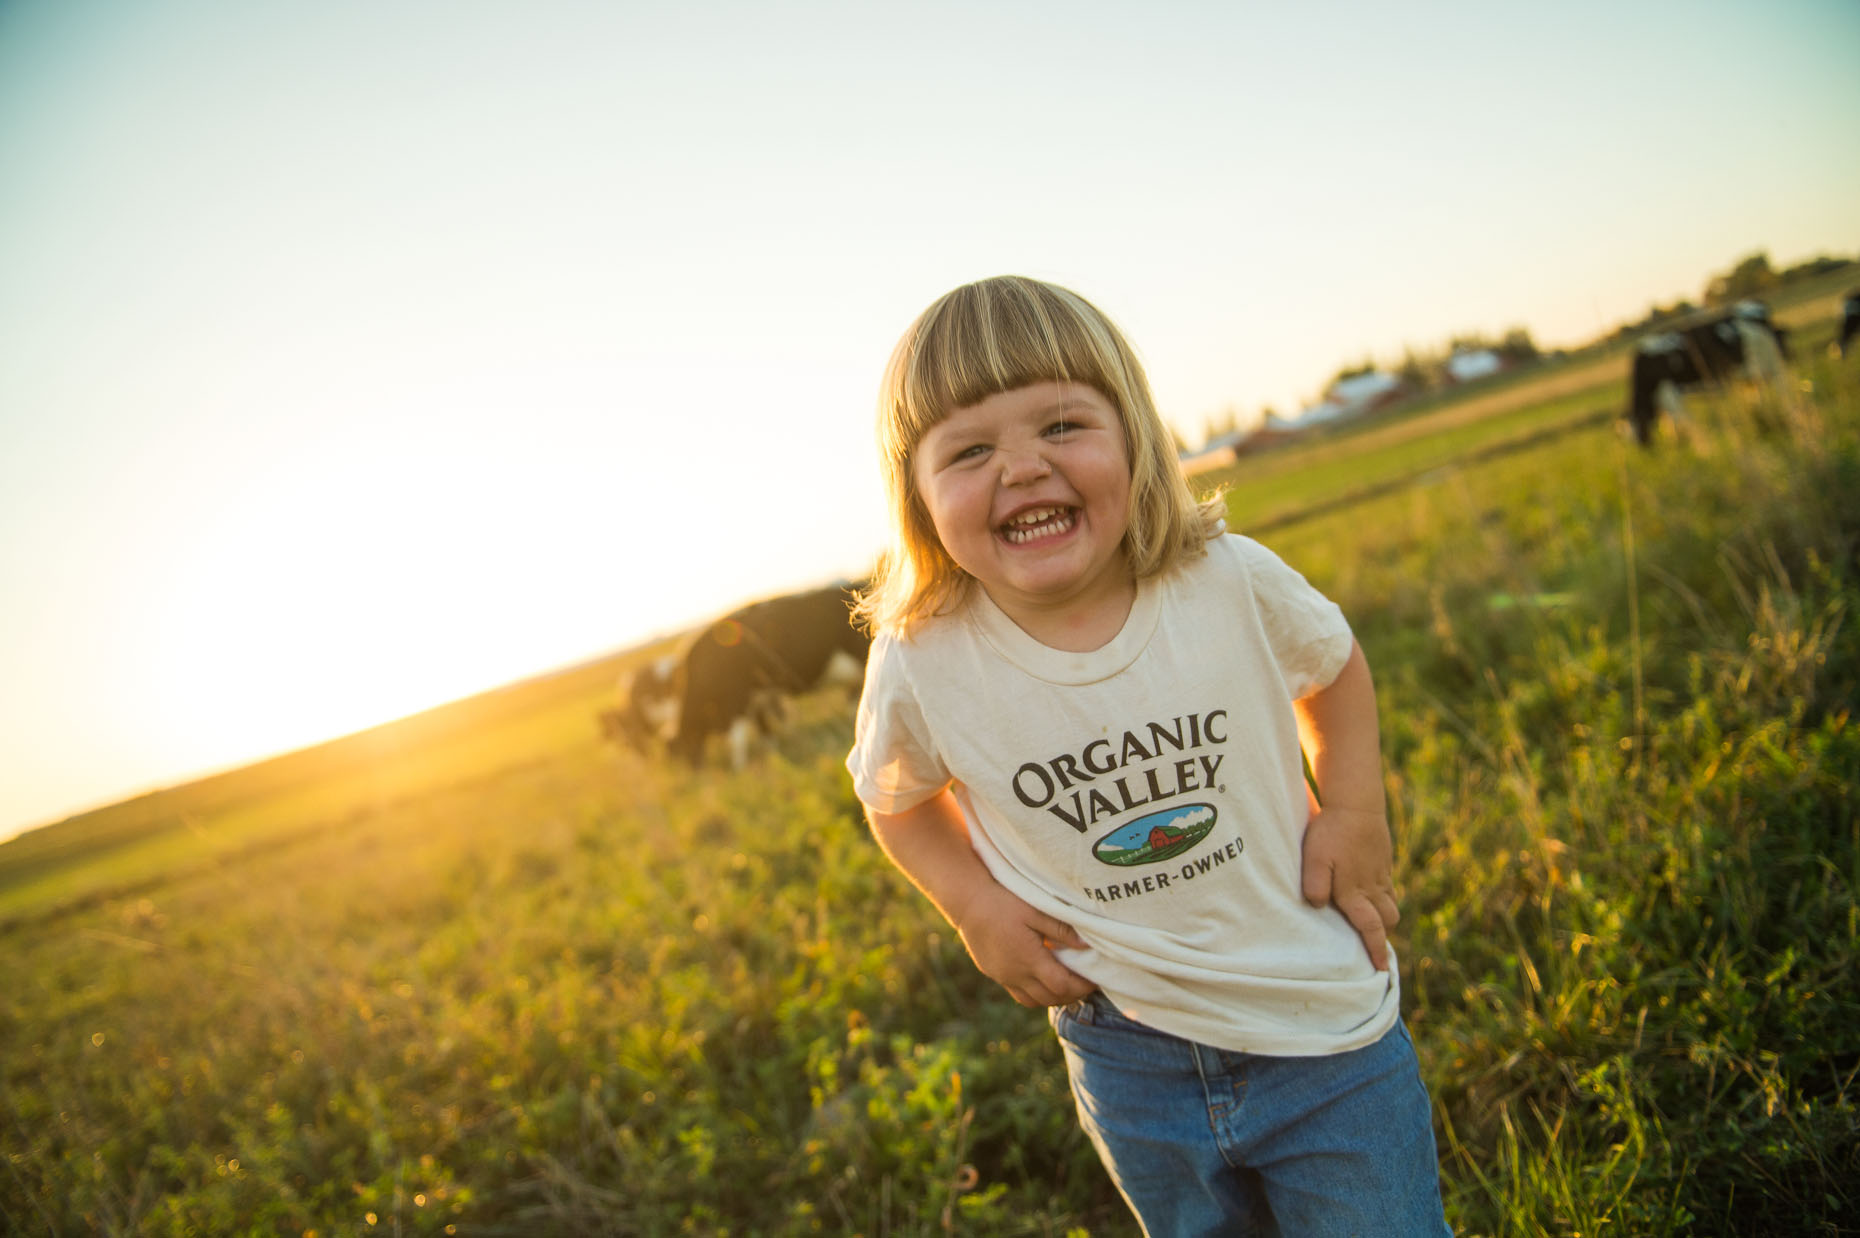 Organic Farmer farm kid